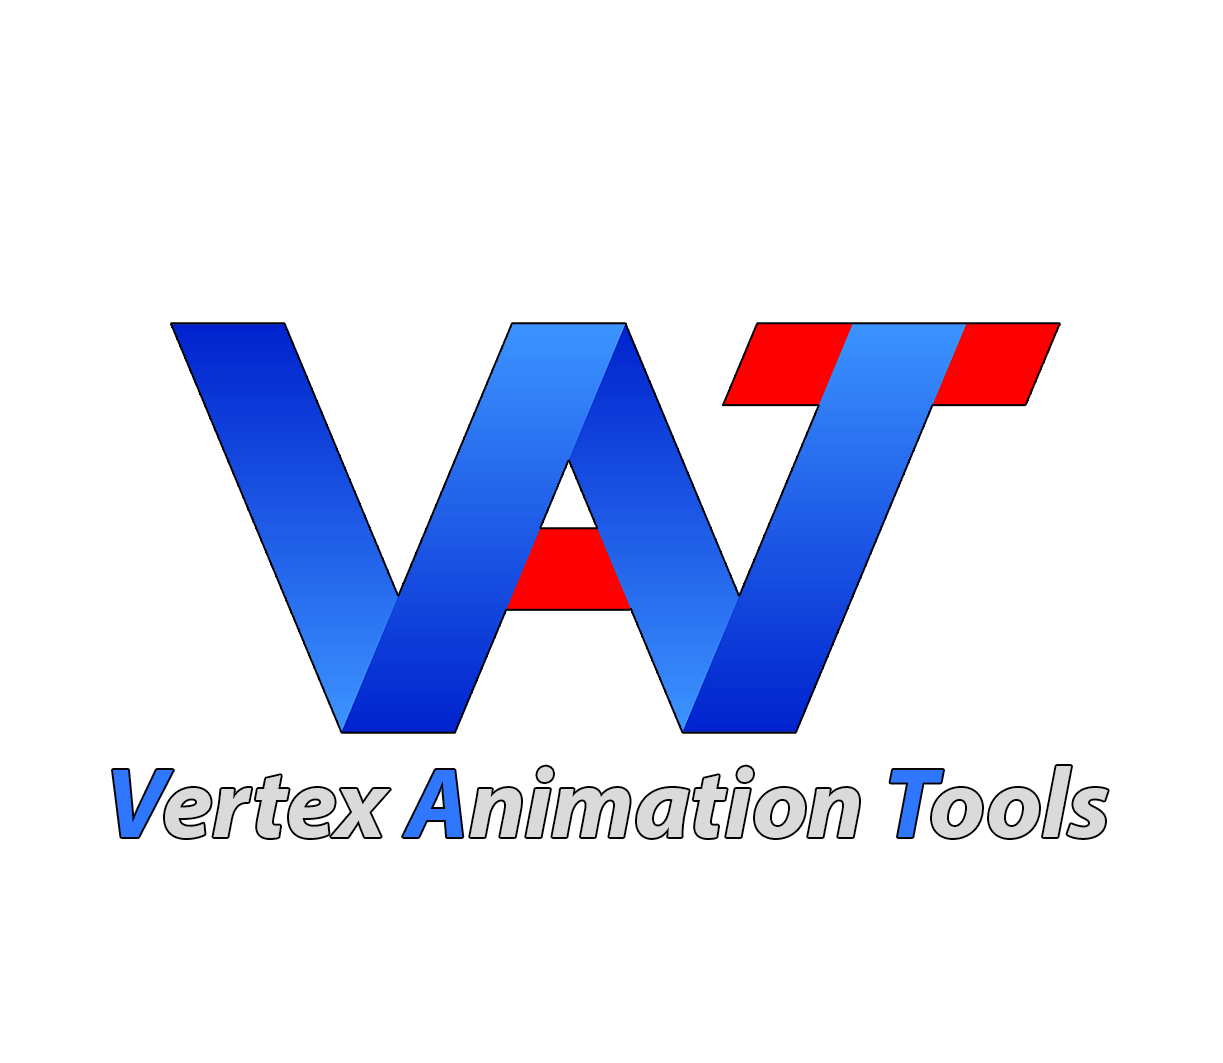 Vertex Animation Tools